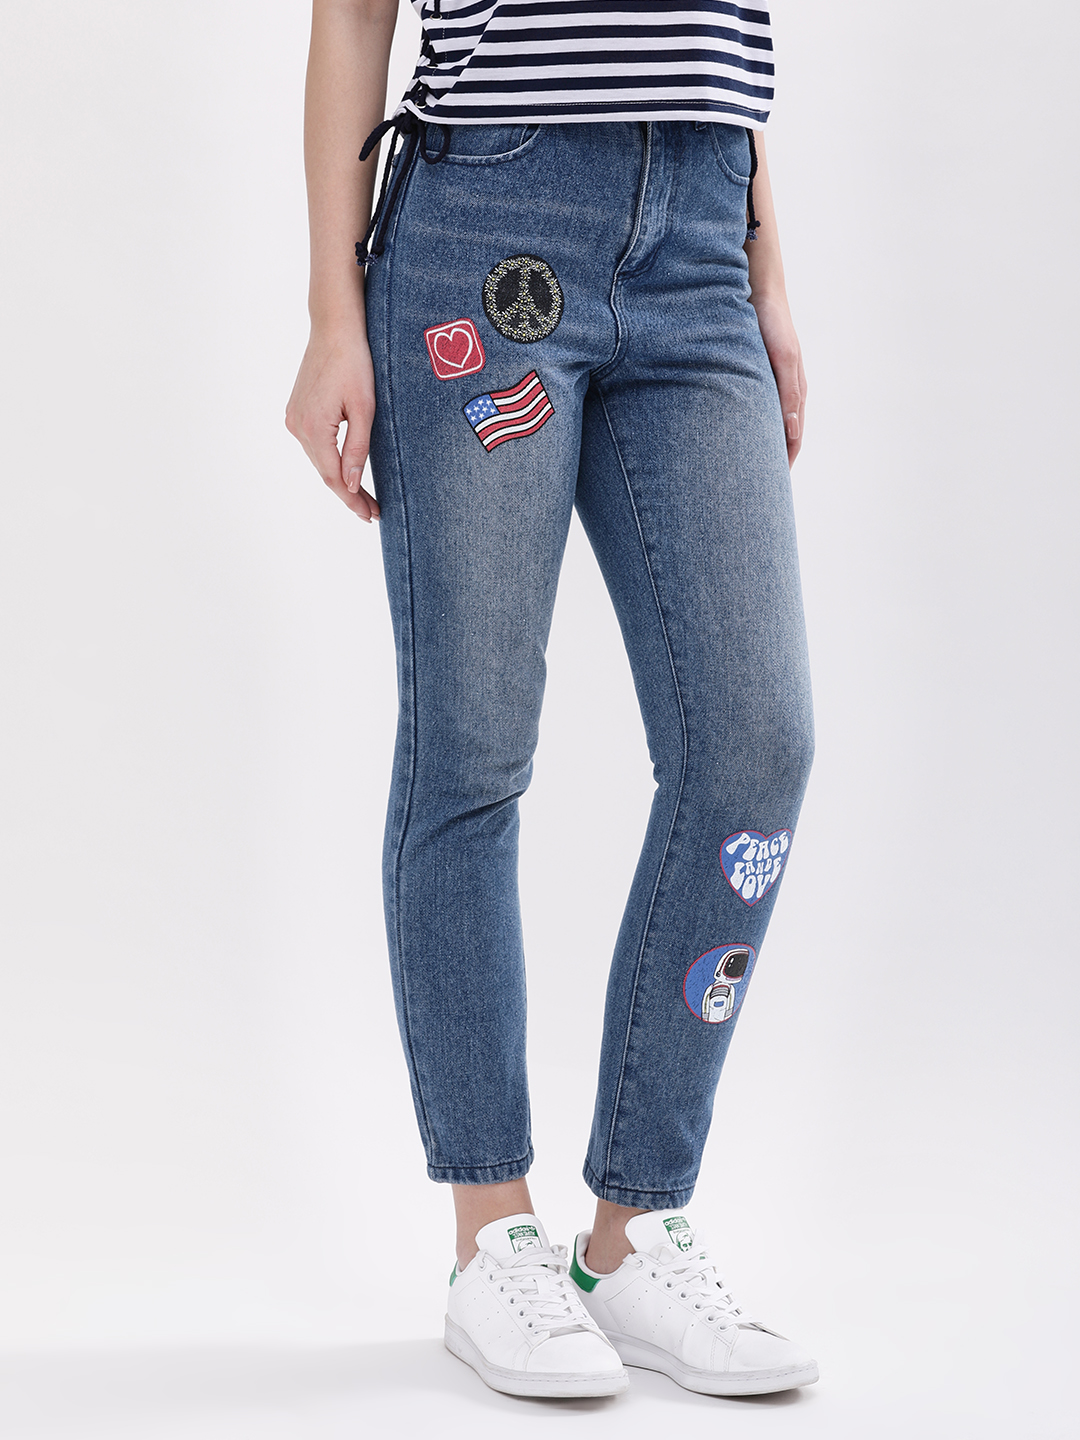 Daisy Street Denim L Skinny Jeans With Badge Detail 1